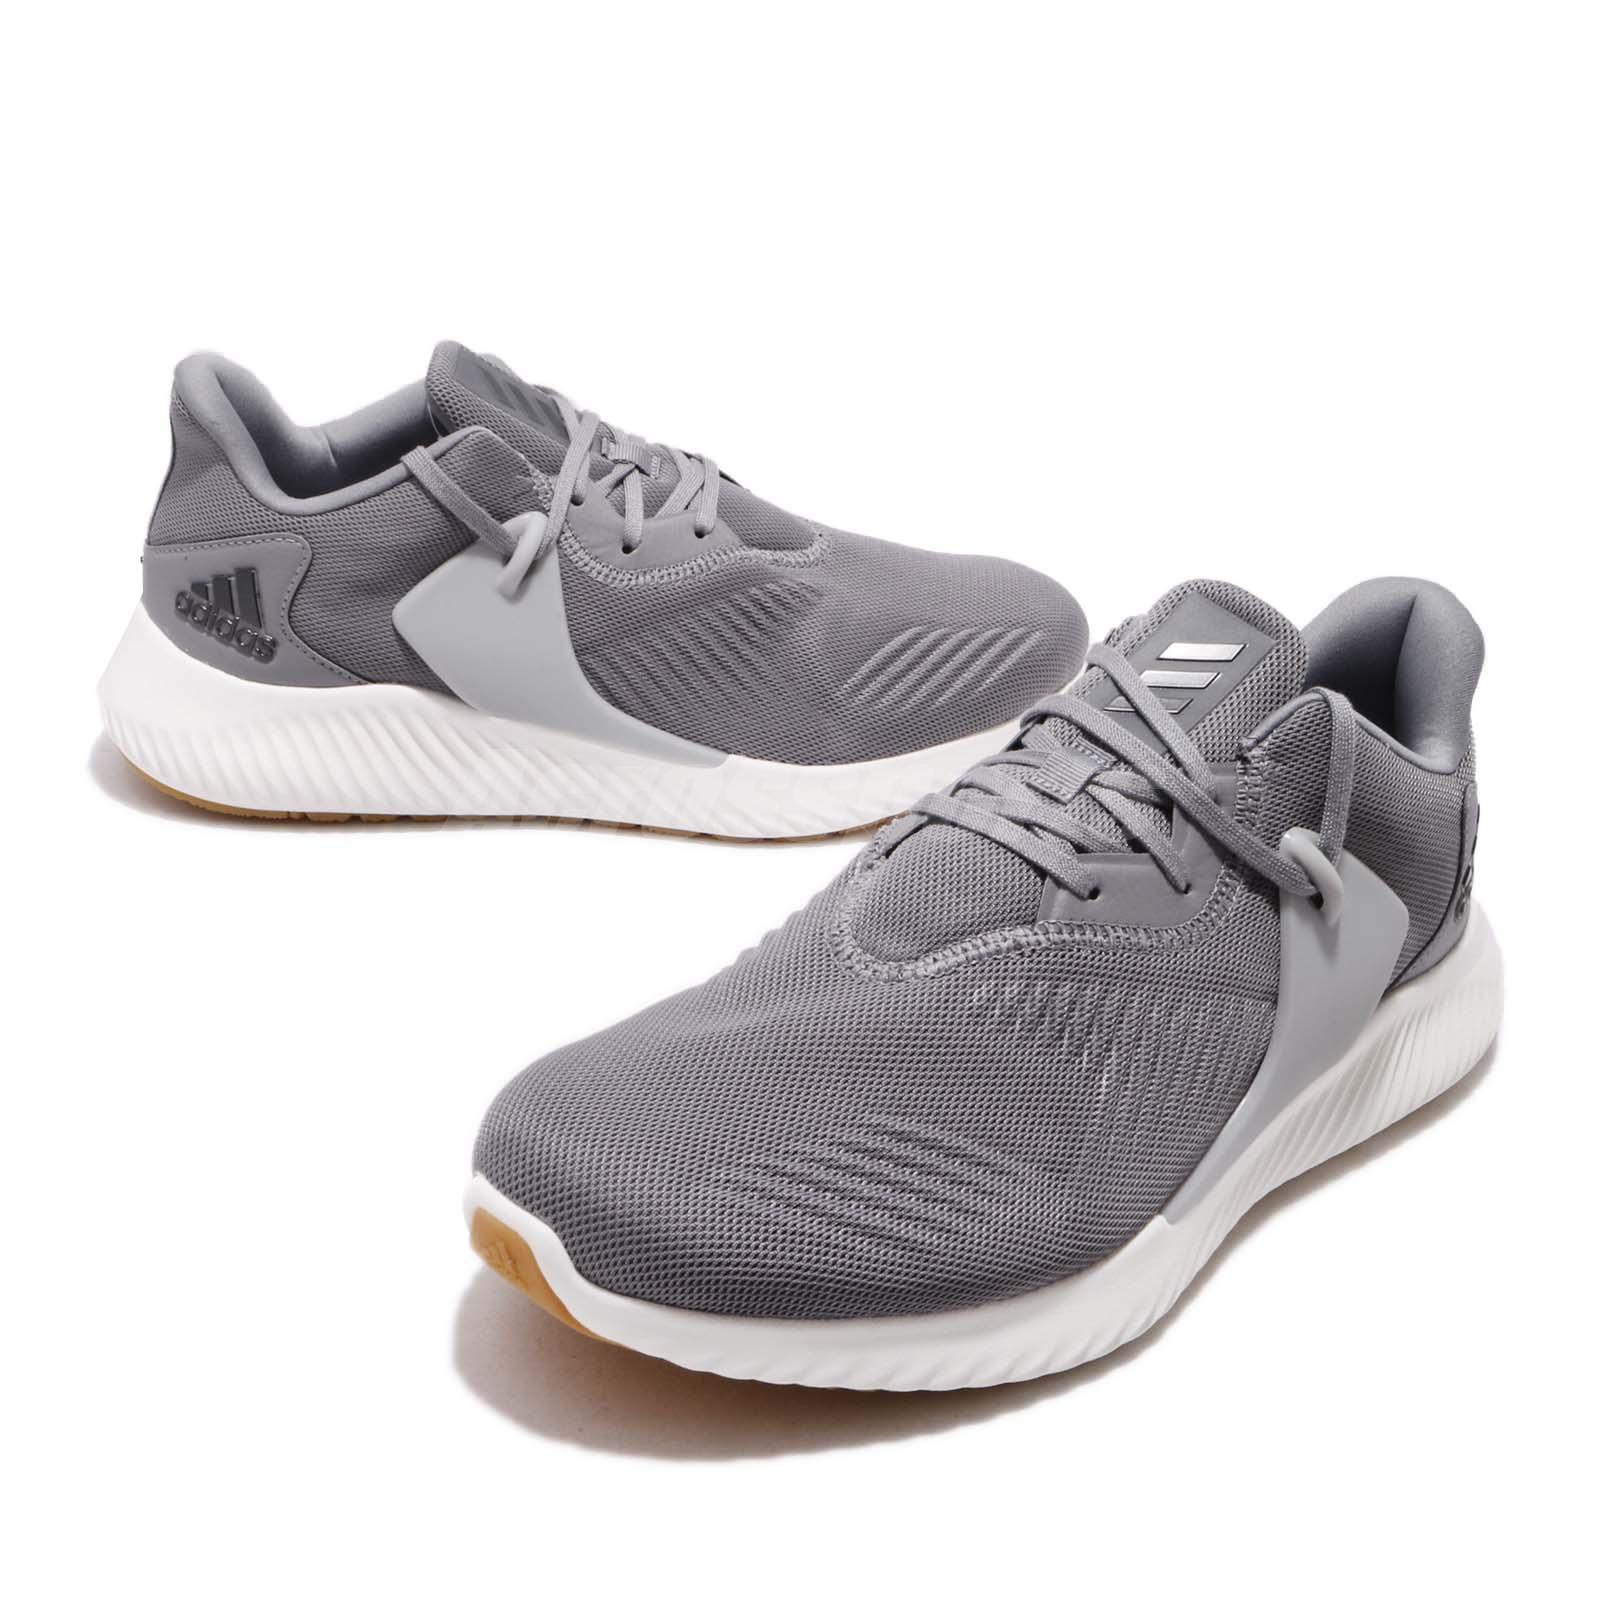 ada0d7eb7 adidas Alphabounce RC 2.0 Grey White Gum Men Running Shoes Sneakers ...